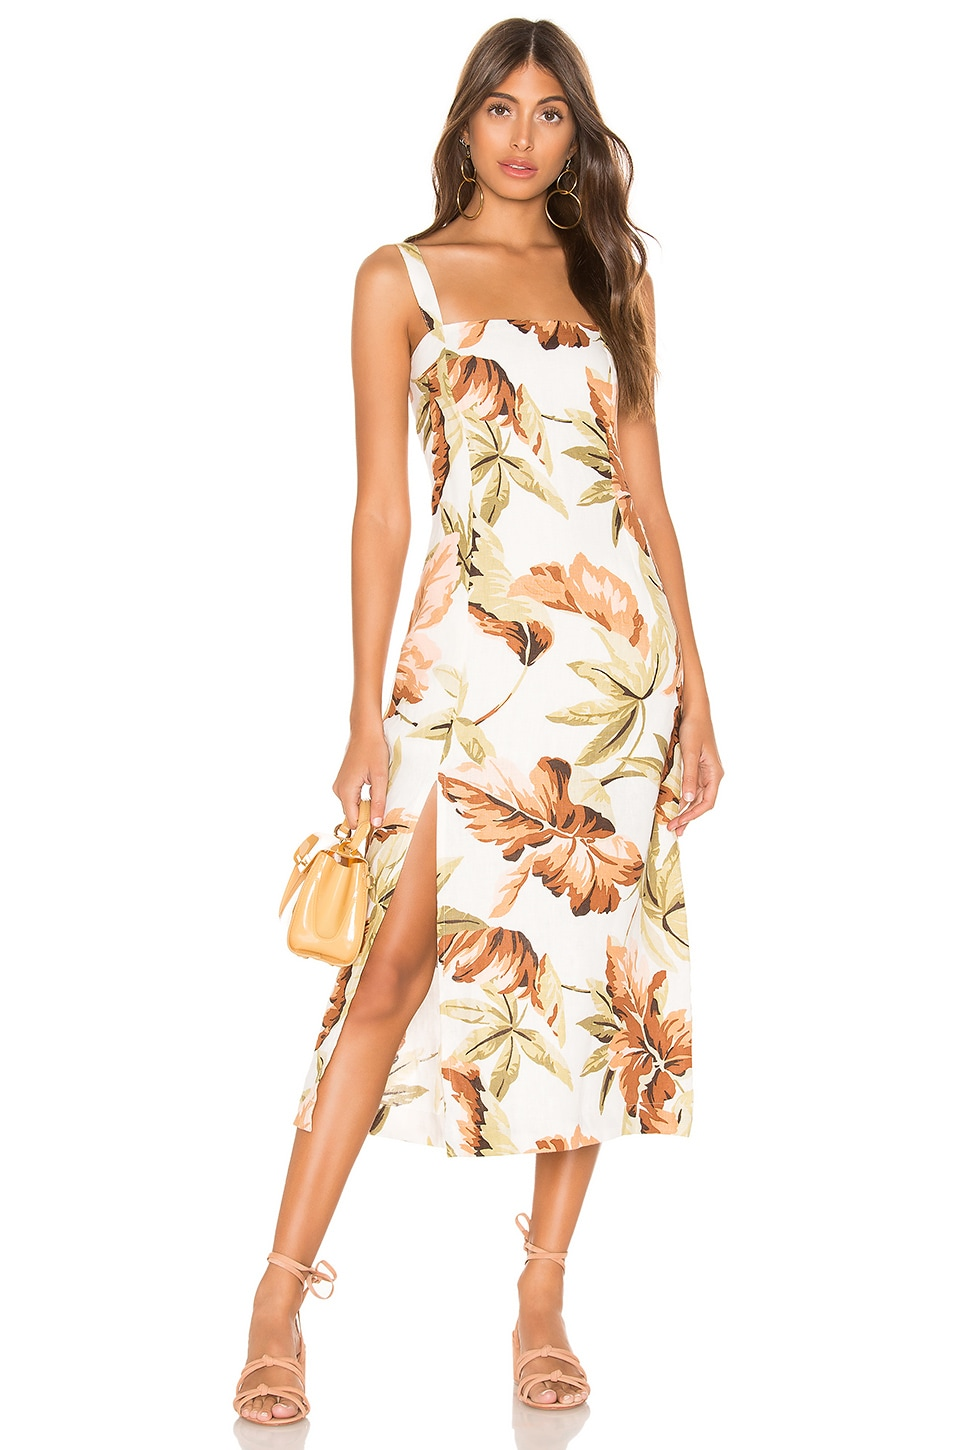 ZULU & ZEPHYR Dusk Leaf Dress in Palm Leaf Print